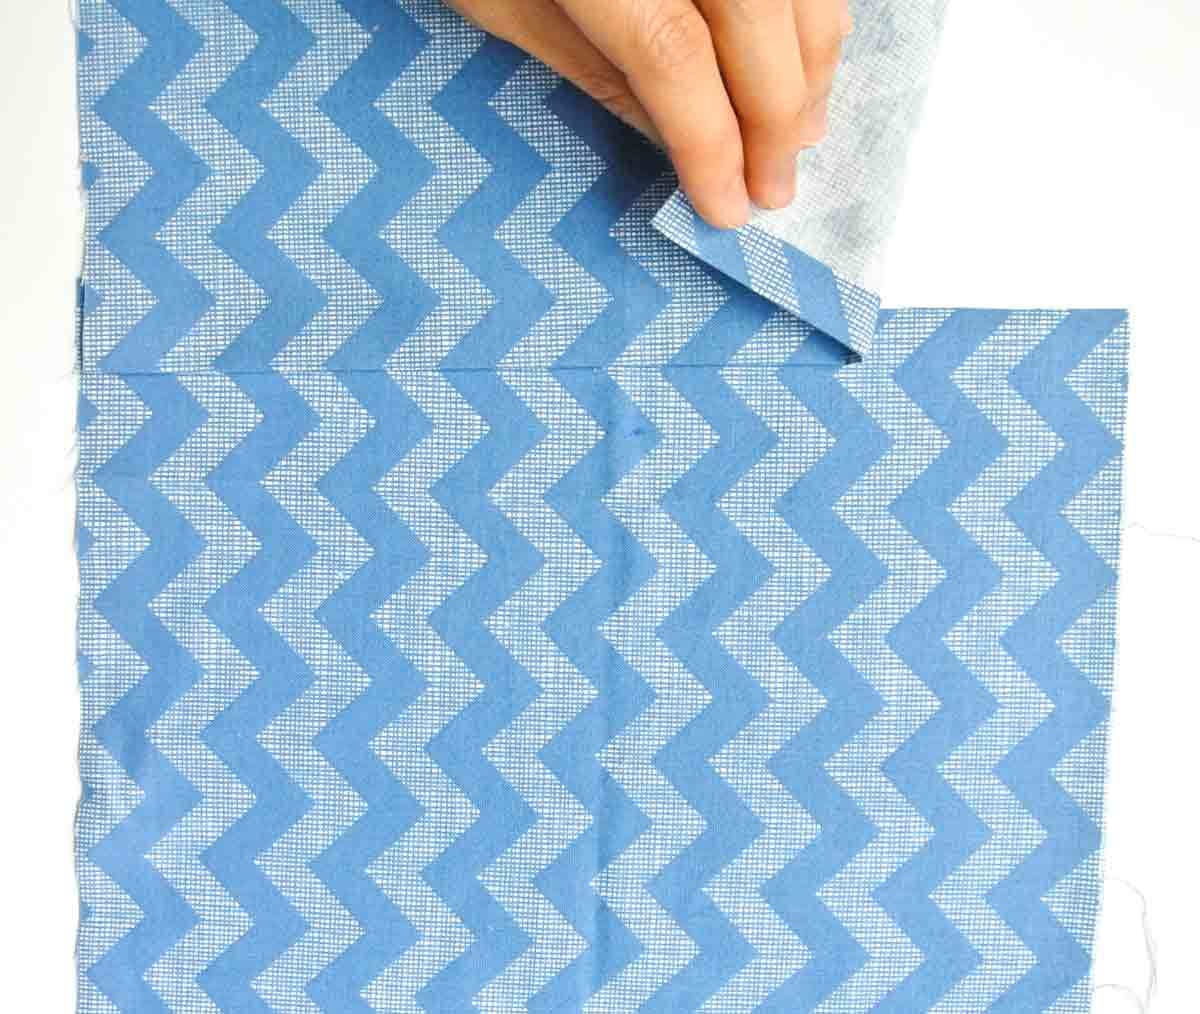 laying fabric together to match pattern prior to slip basting